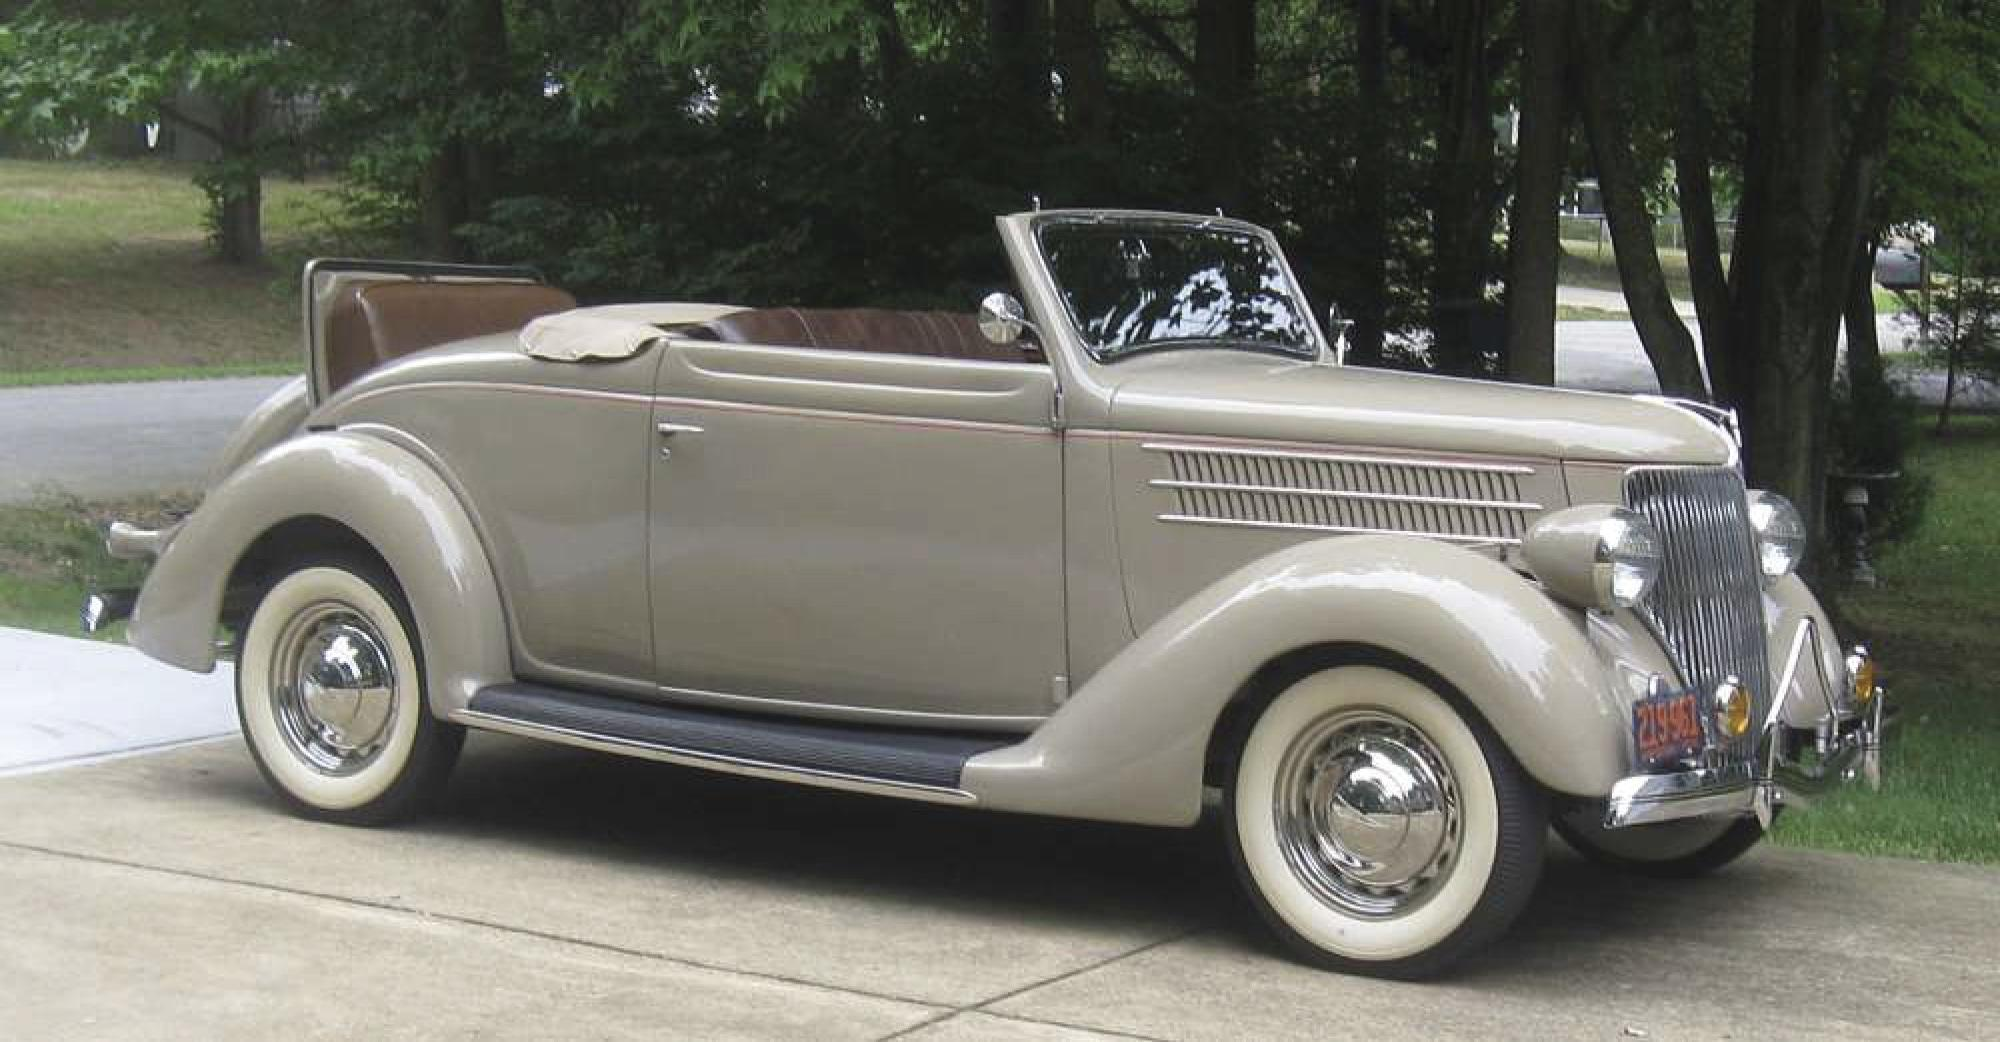 The classics: 1936 Ford Deluxe Cabriolet's appeal hard to resist